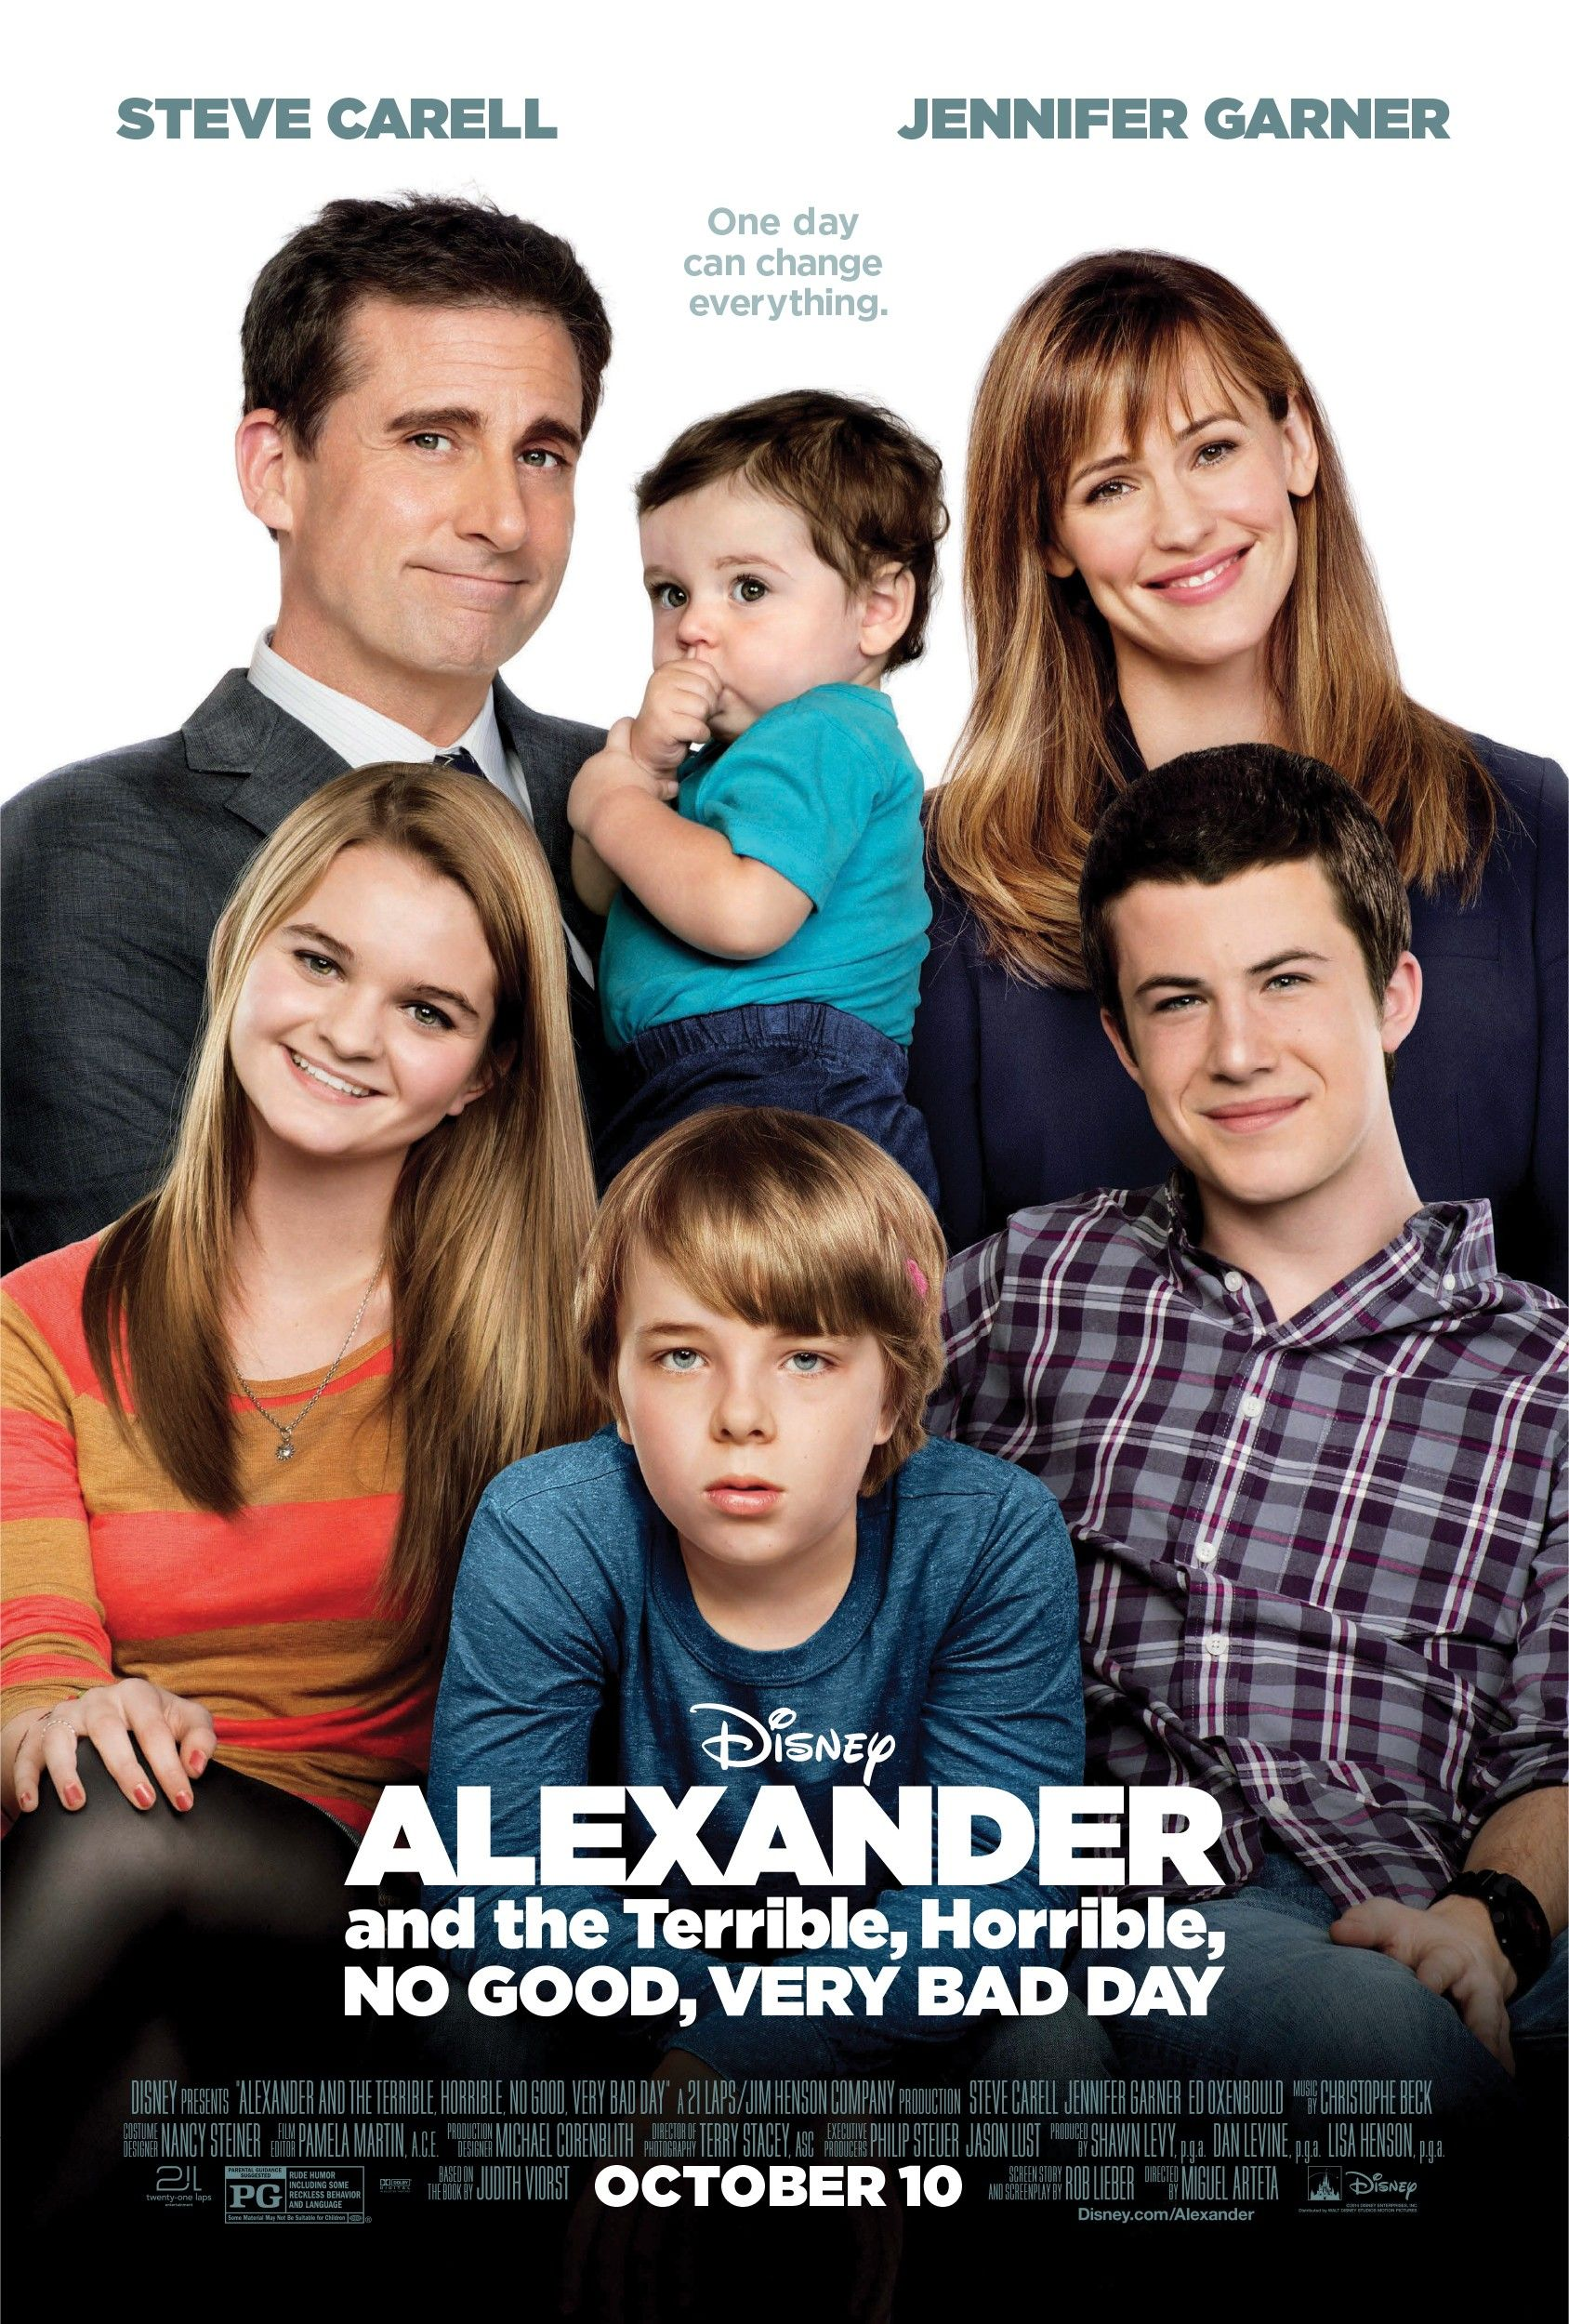 ''Alexander and the Terrible, Horrible, No Good, Very Bad Day''.